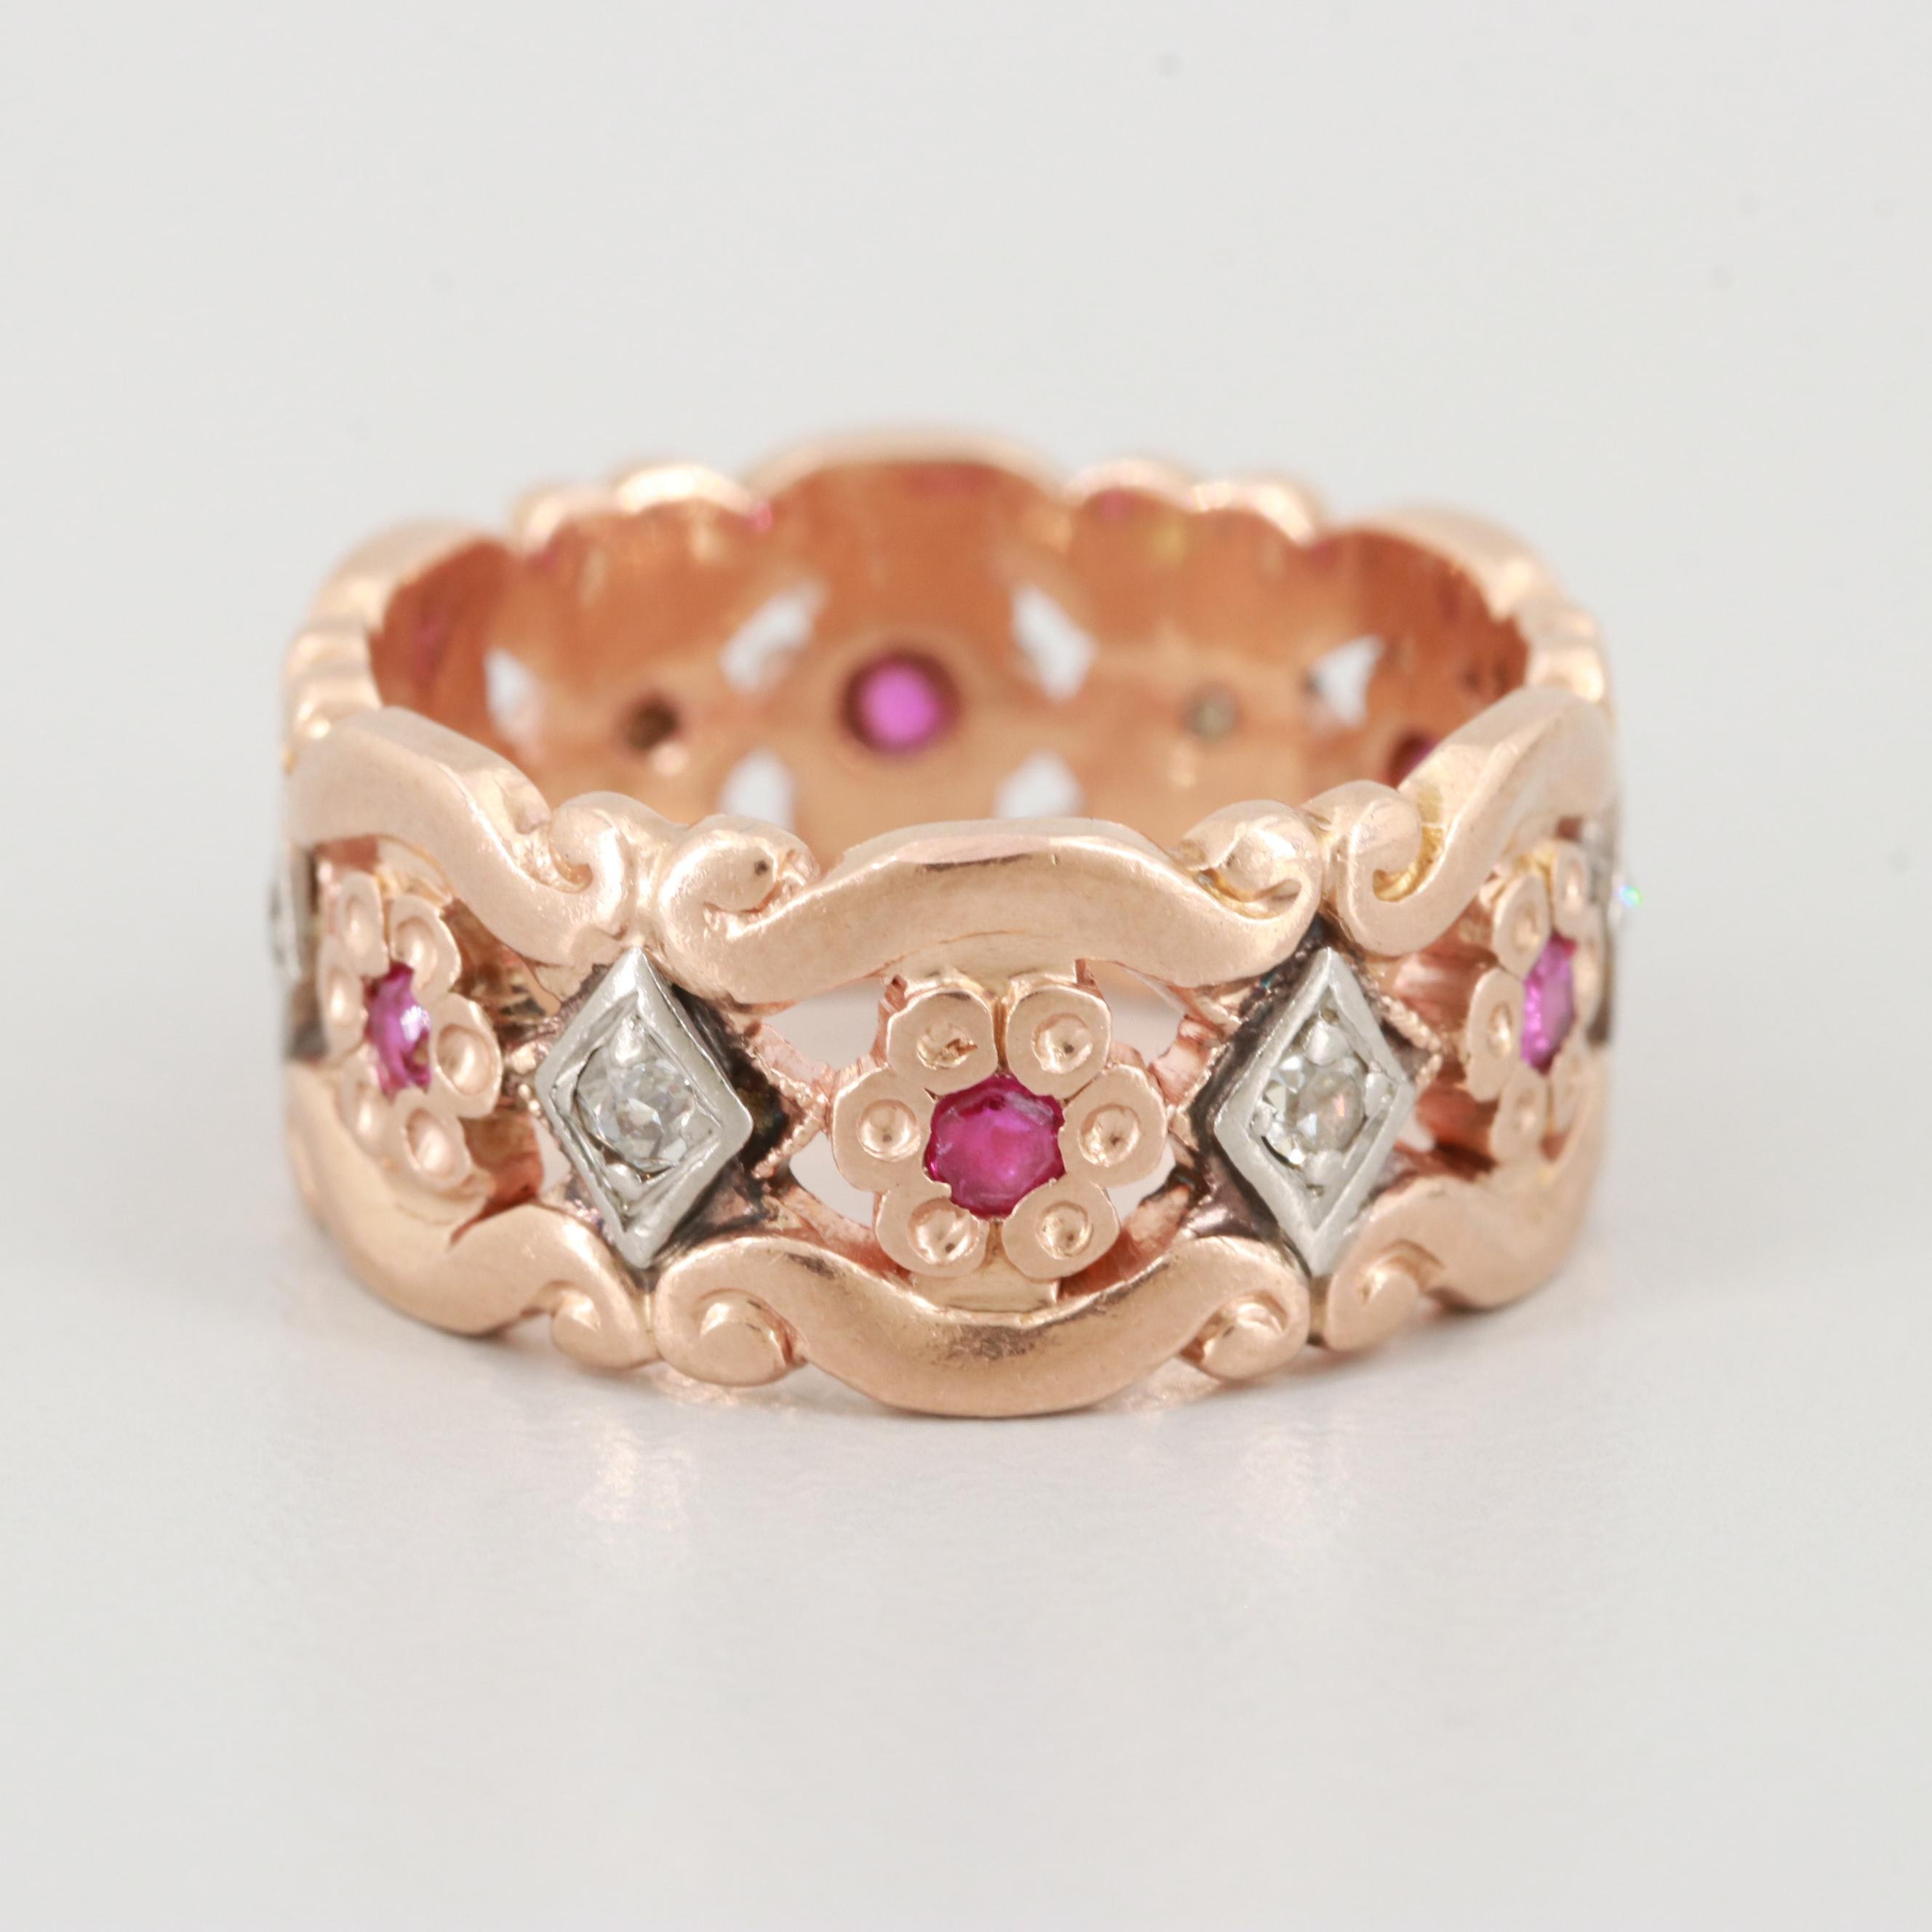 14K Rose Gold Diamond and Ruby Ring with Palladium Accents